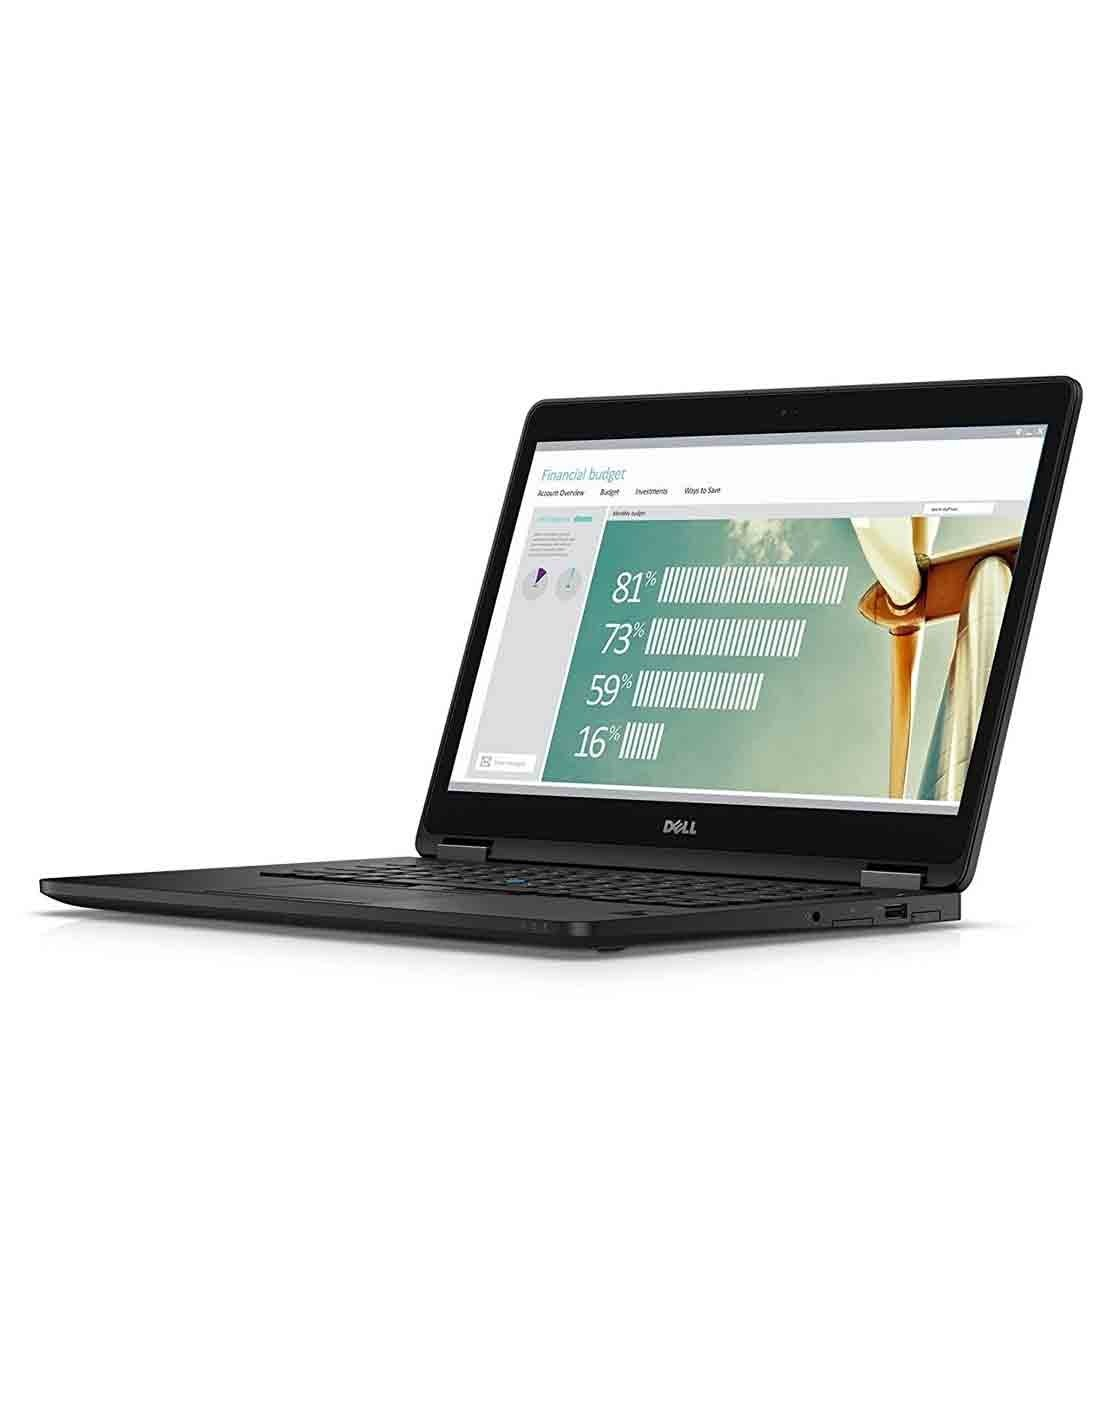 Dell Latitude E7270 Core i5 Business Notebook Images and Pictures